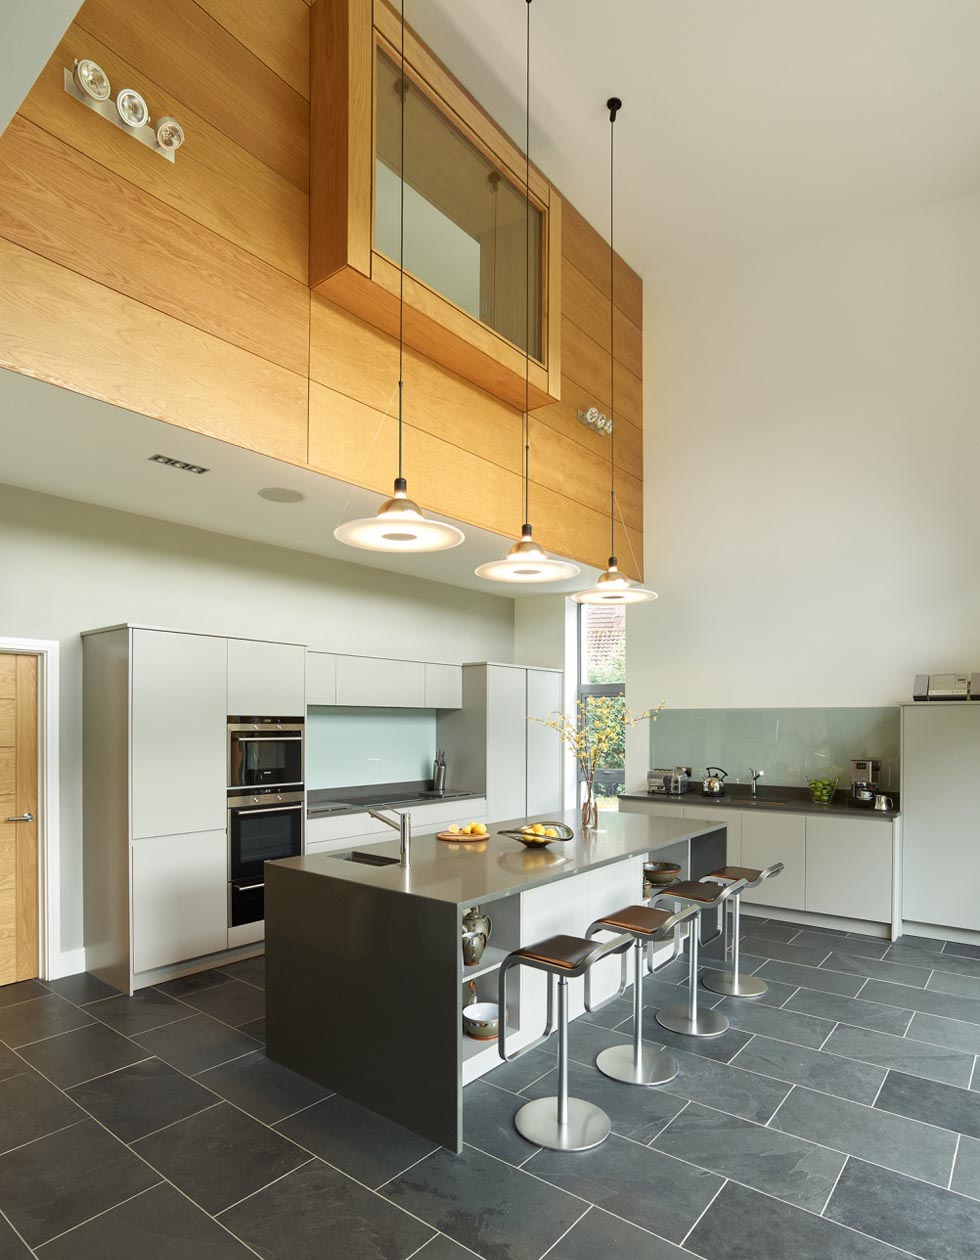 the double height kitchen diner in a remodel of a 1960s home